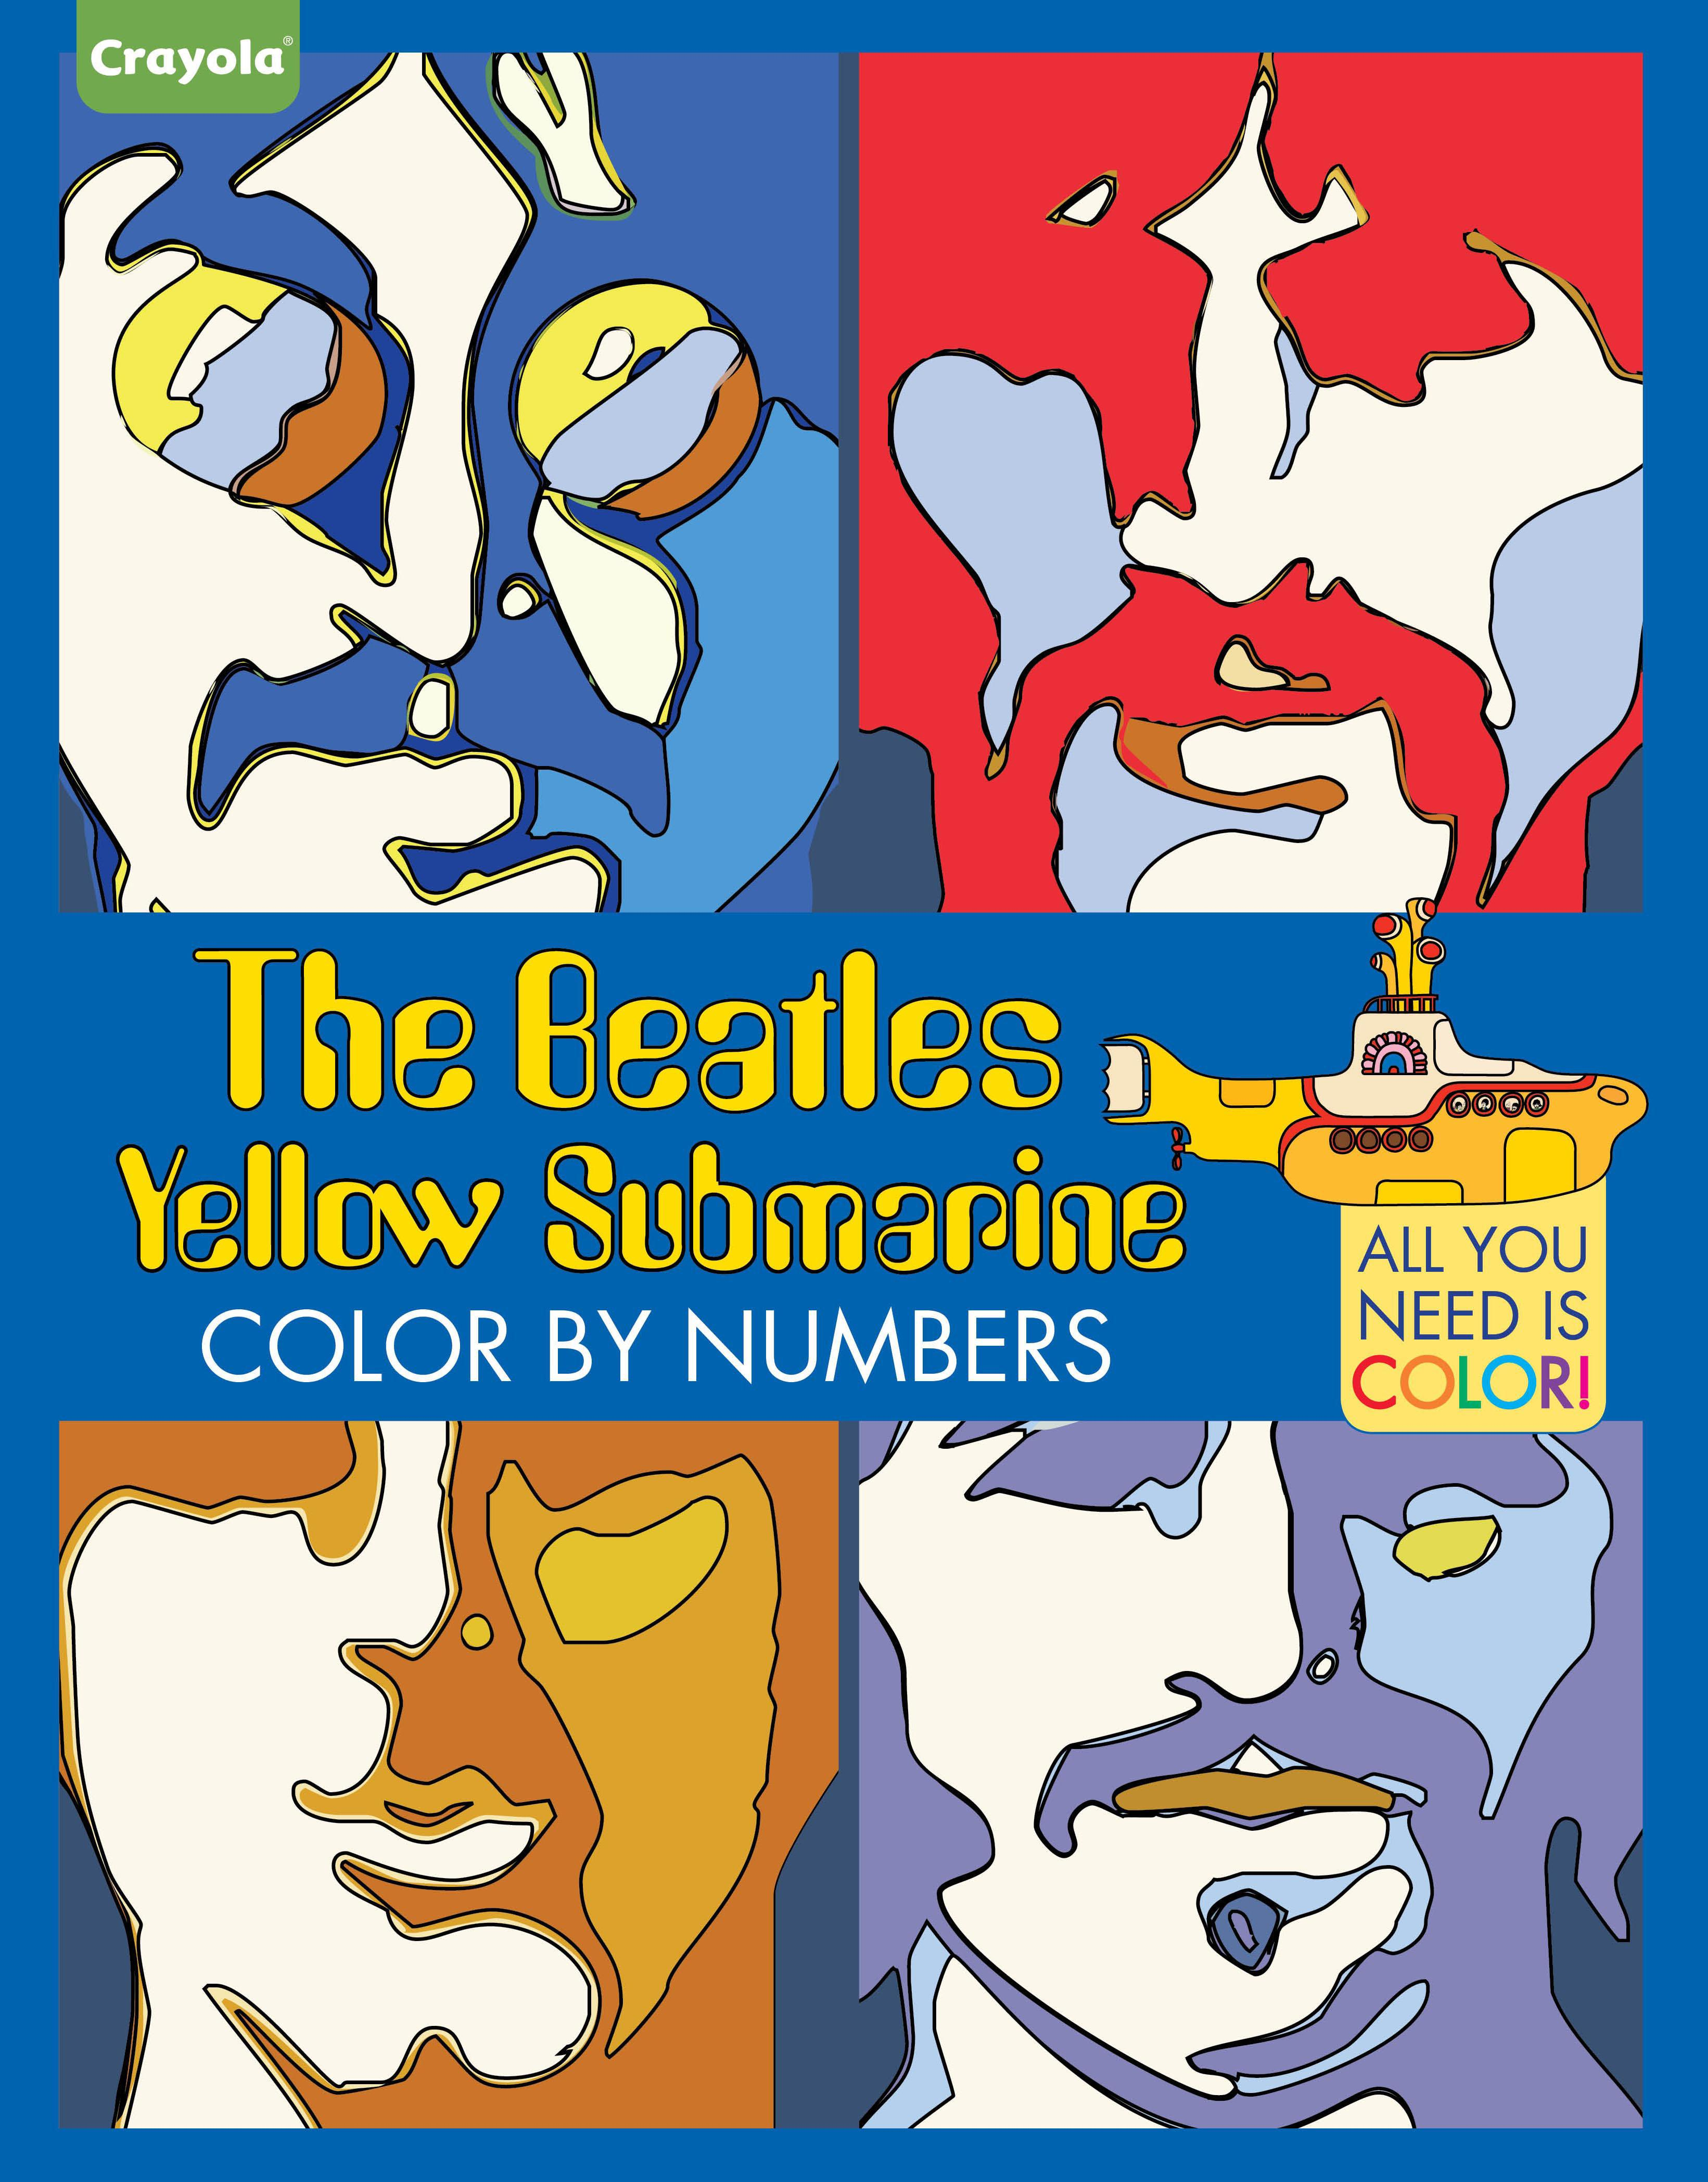 Crayola The Beatles Yellow Submarine Color By Numbers All You